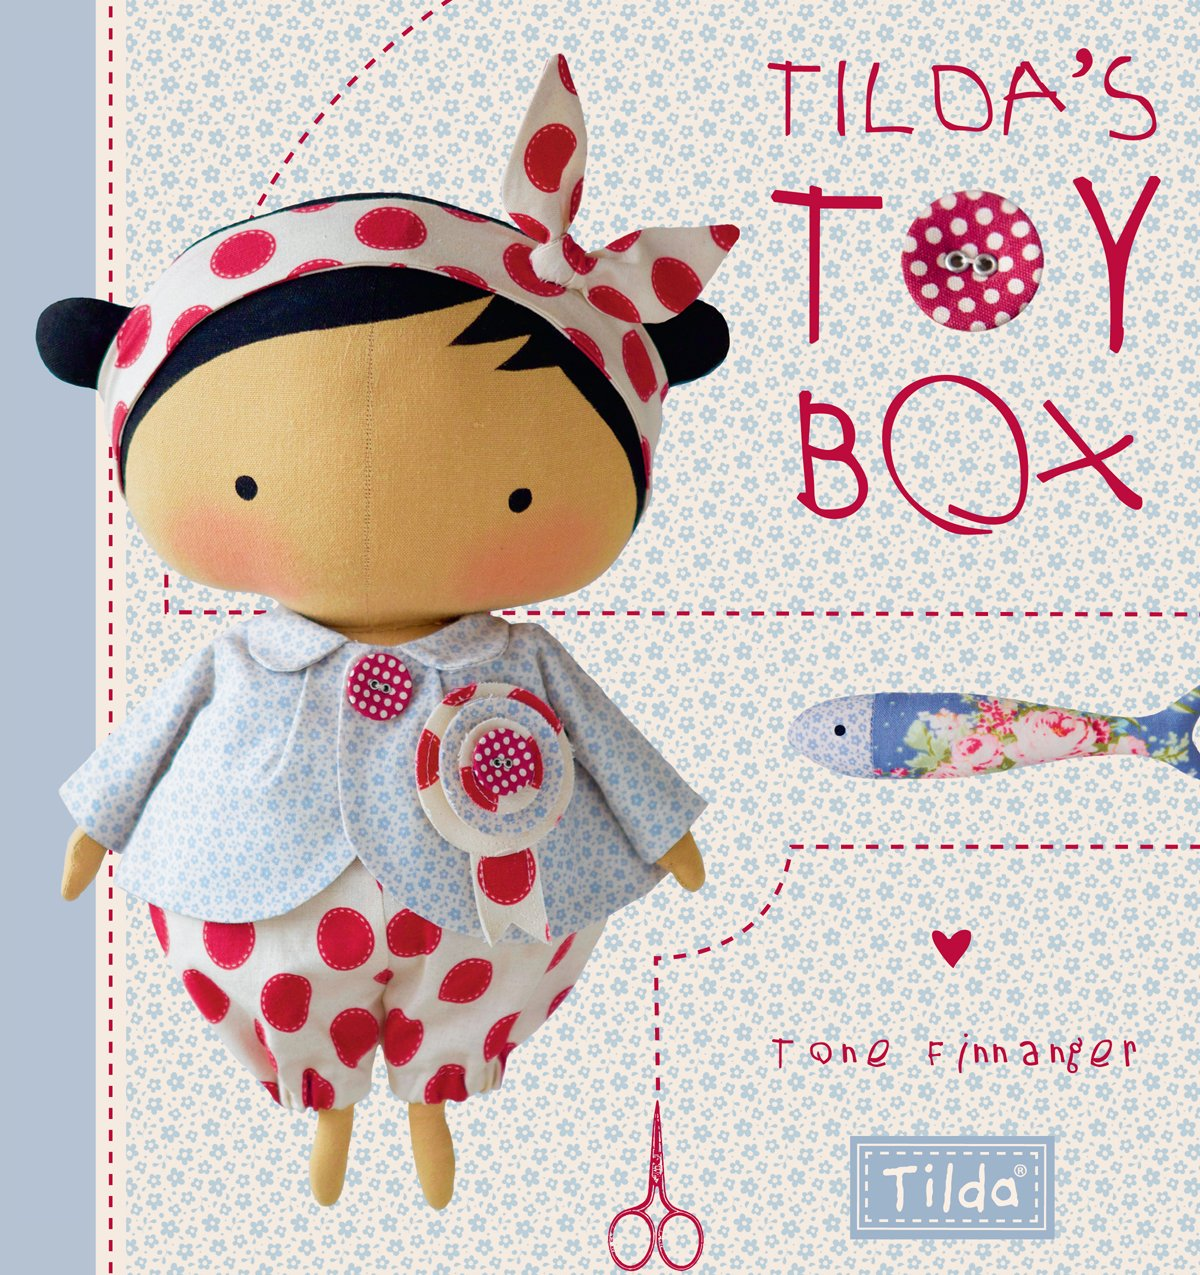 Tildas Toy Box: Sewing patterns for soft toys and more from the magical world of Tilda: Amazon.es: Tone Finnanger: Libros en idiomas extranjeros